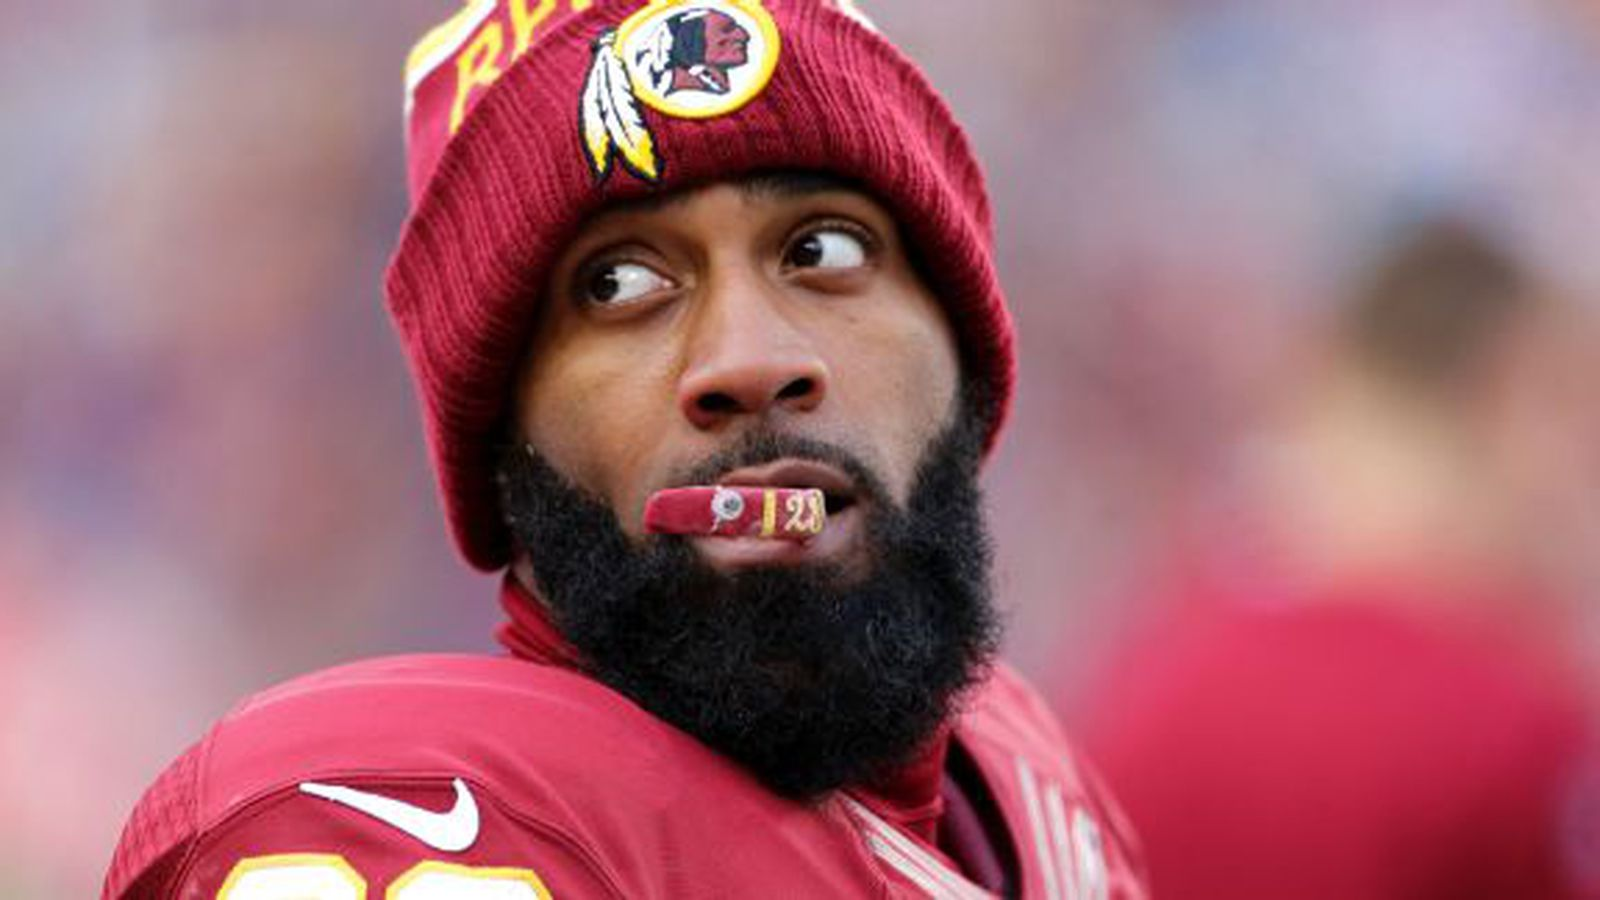 Deangelo_hall.0